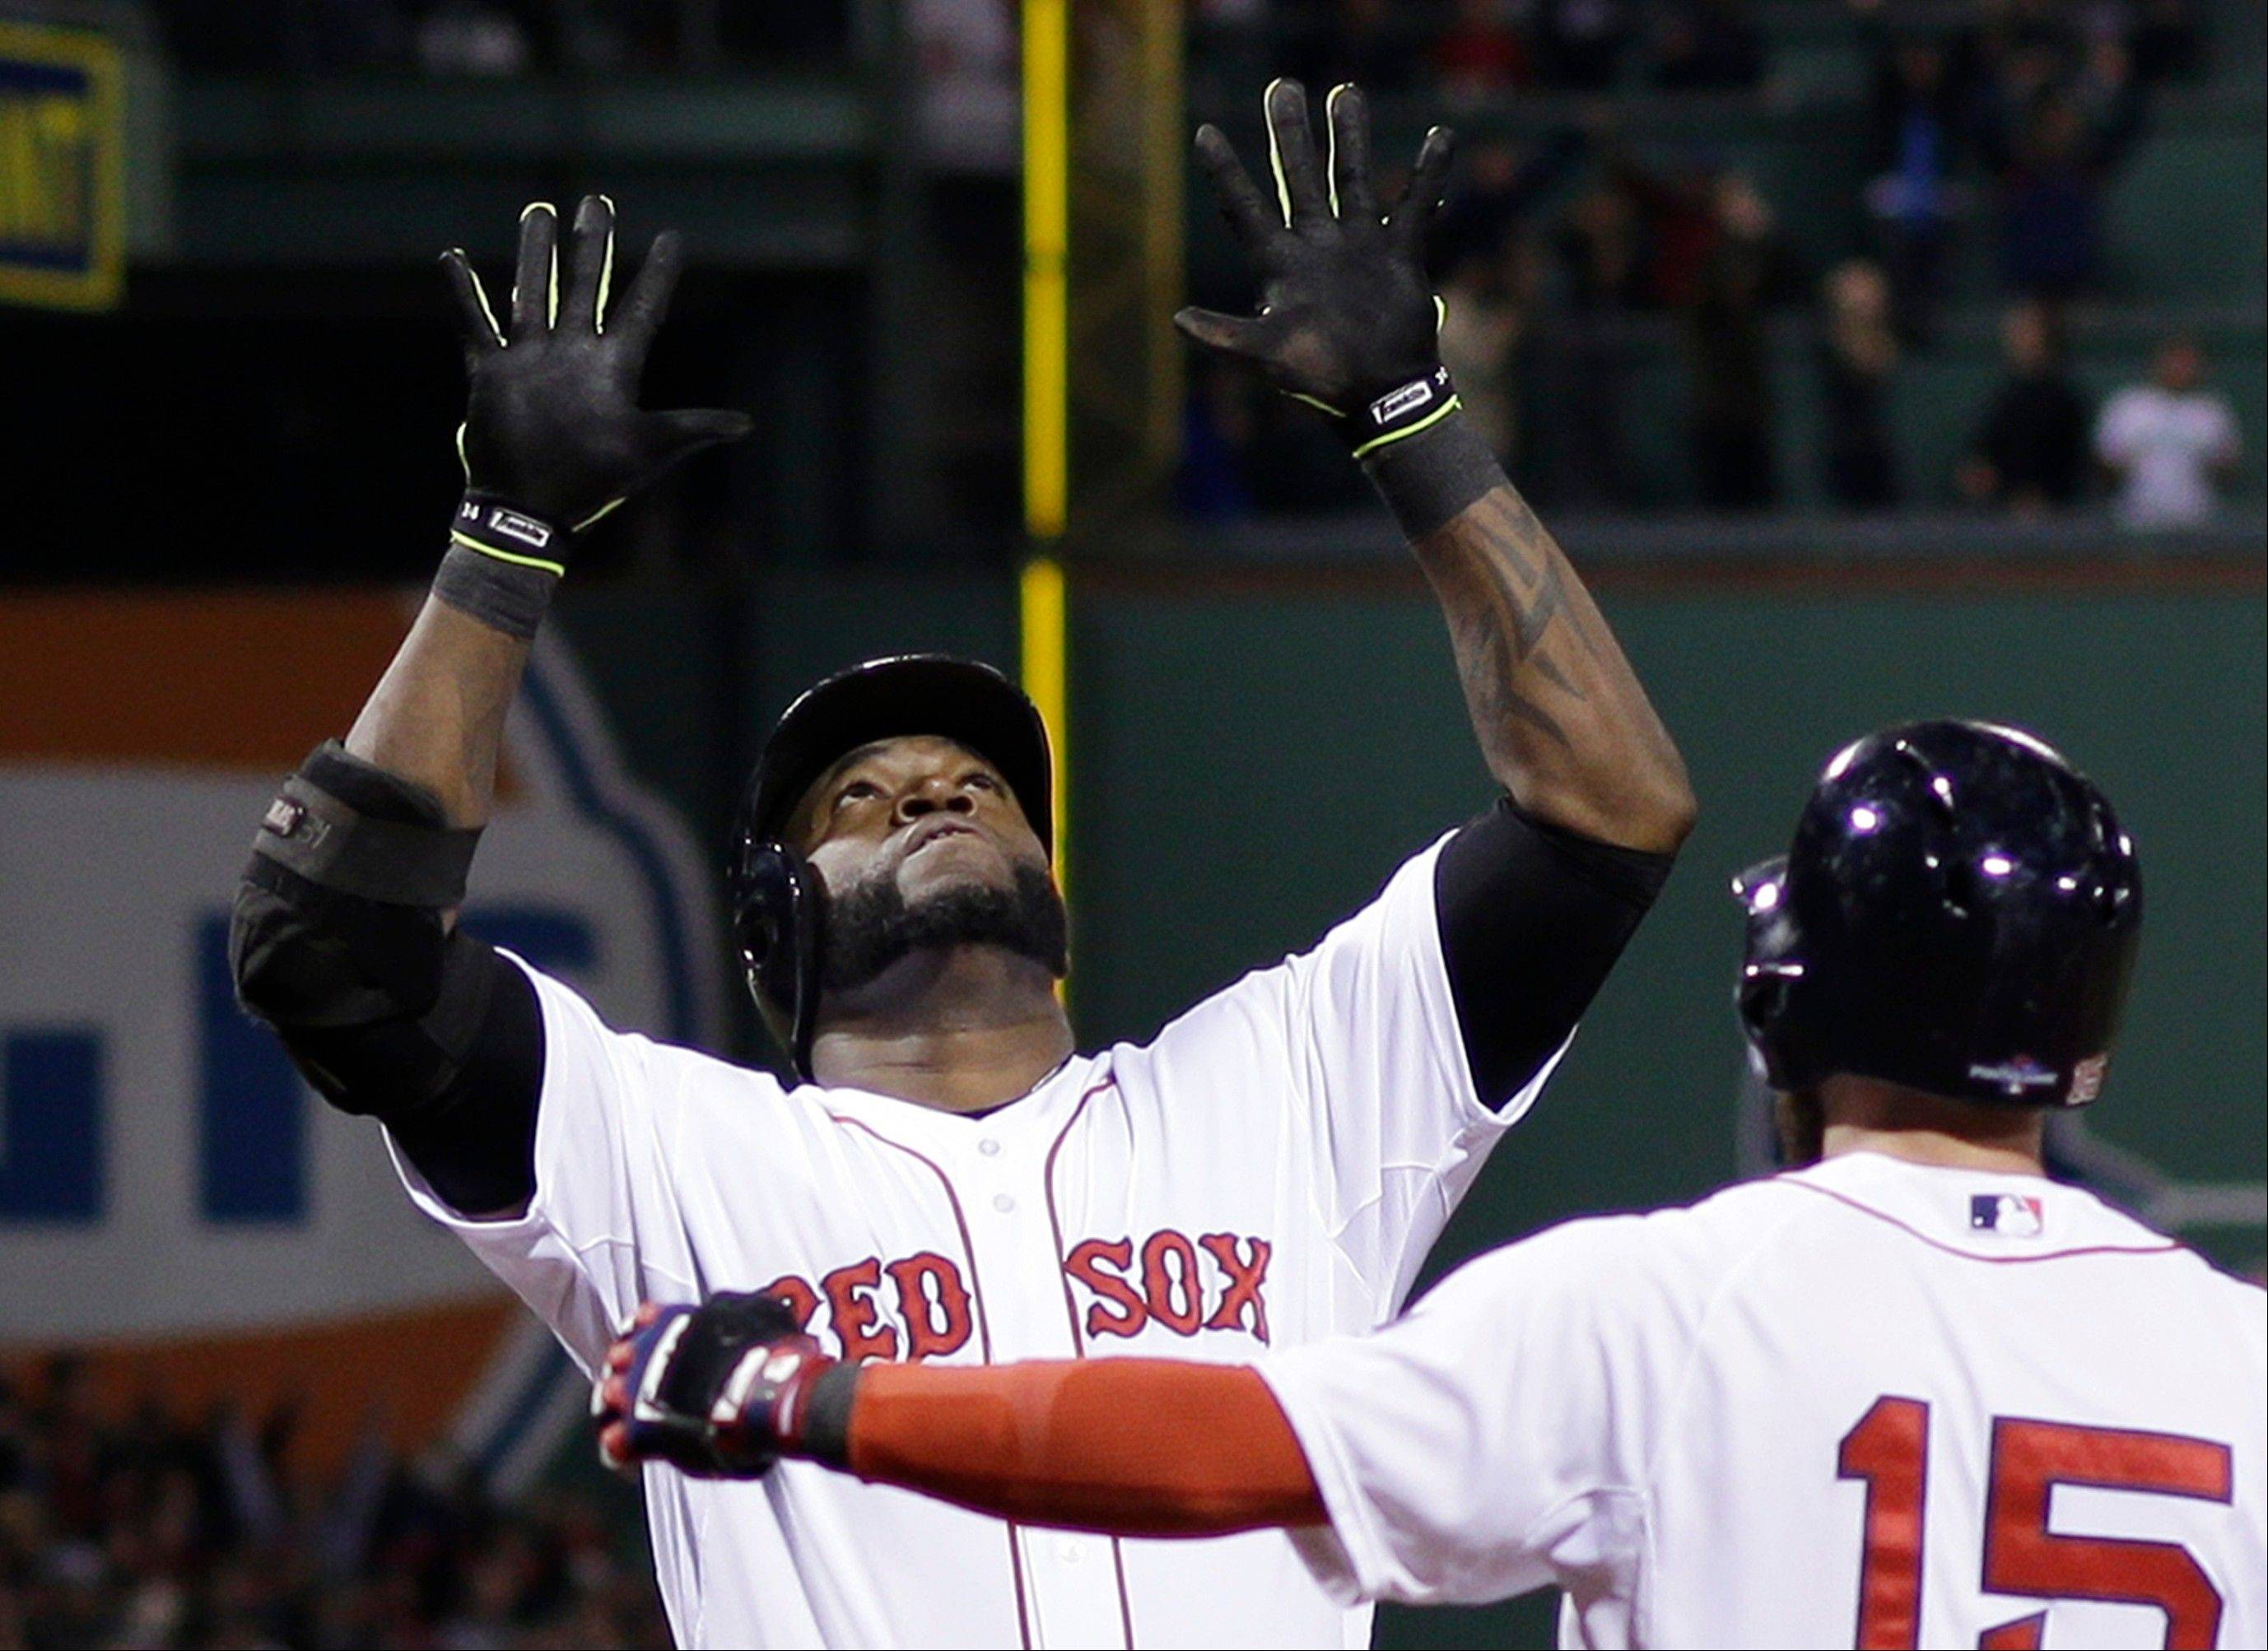 Boston Red Sox's David Ortiz celebrates with Dustin Pedroia after hitting a grand slam home run in the eighth inning during Game 2 of the American League baseball championship series against the Detroit Tigers Sunday, Oct. 13, 2013, in Boston.